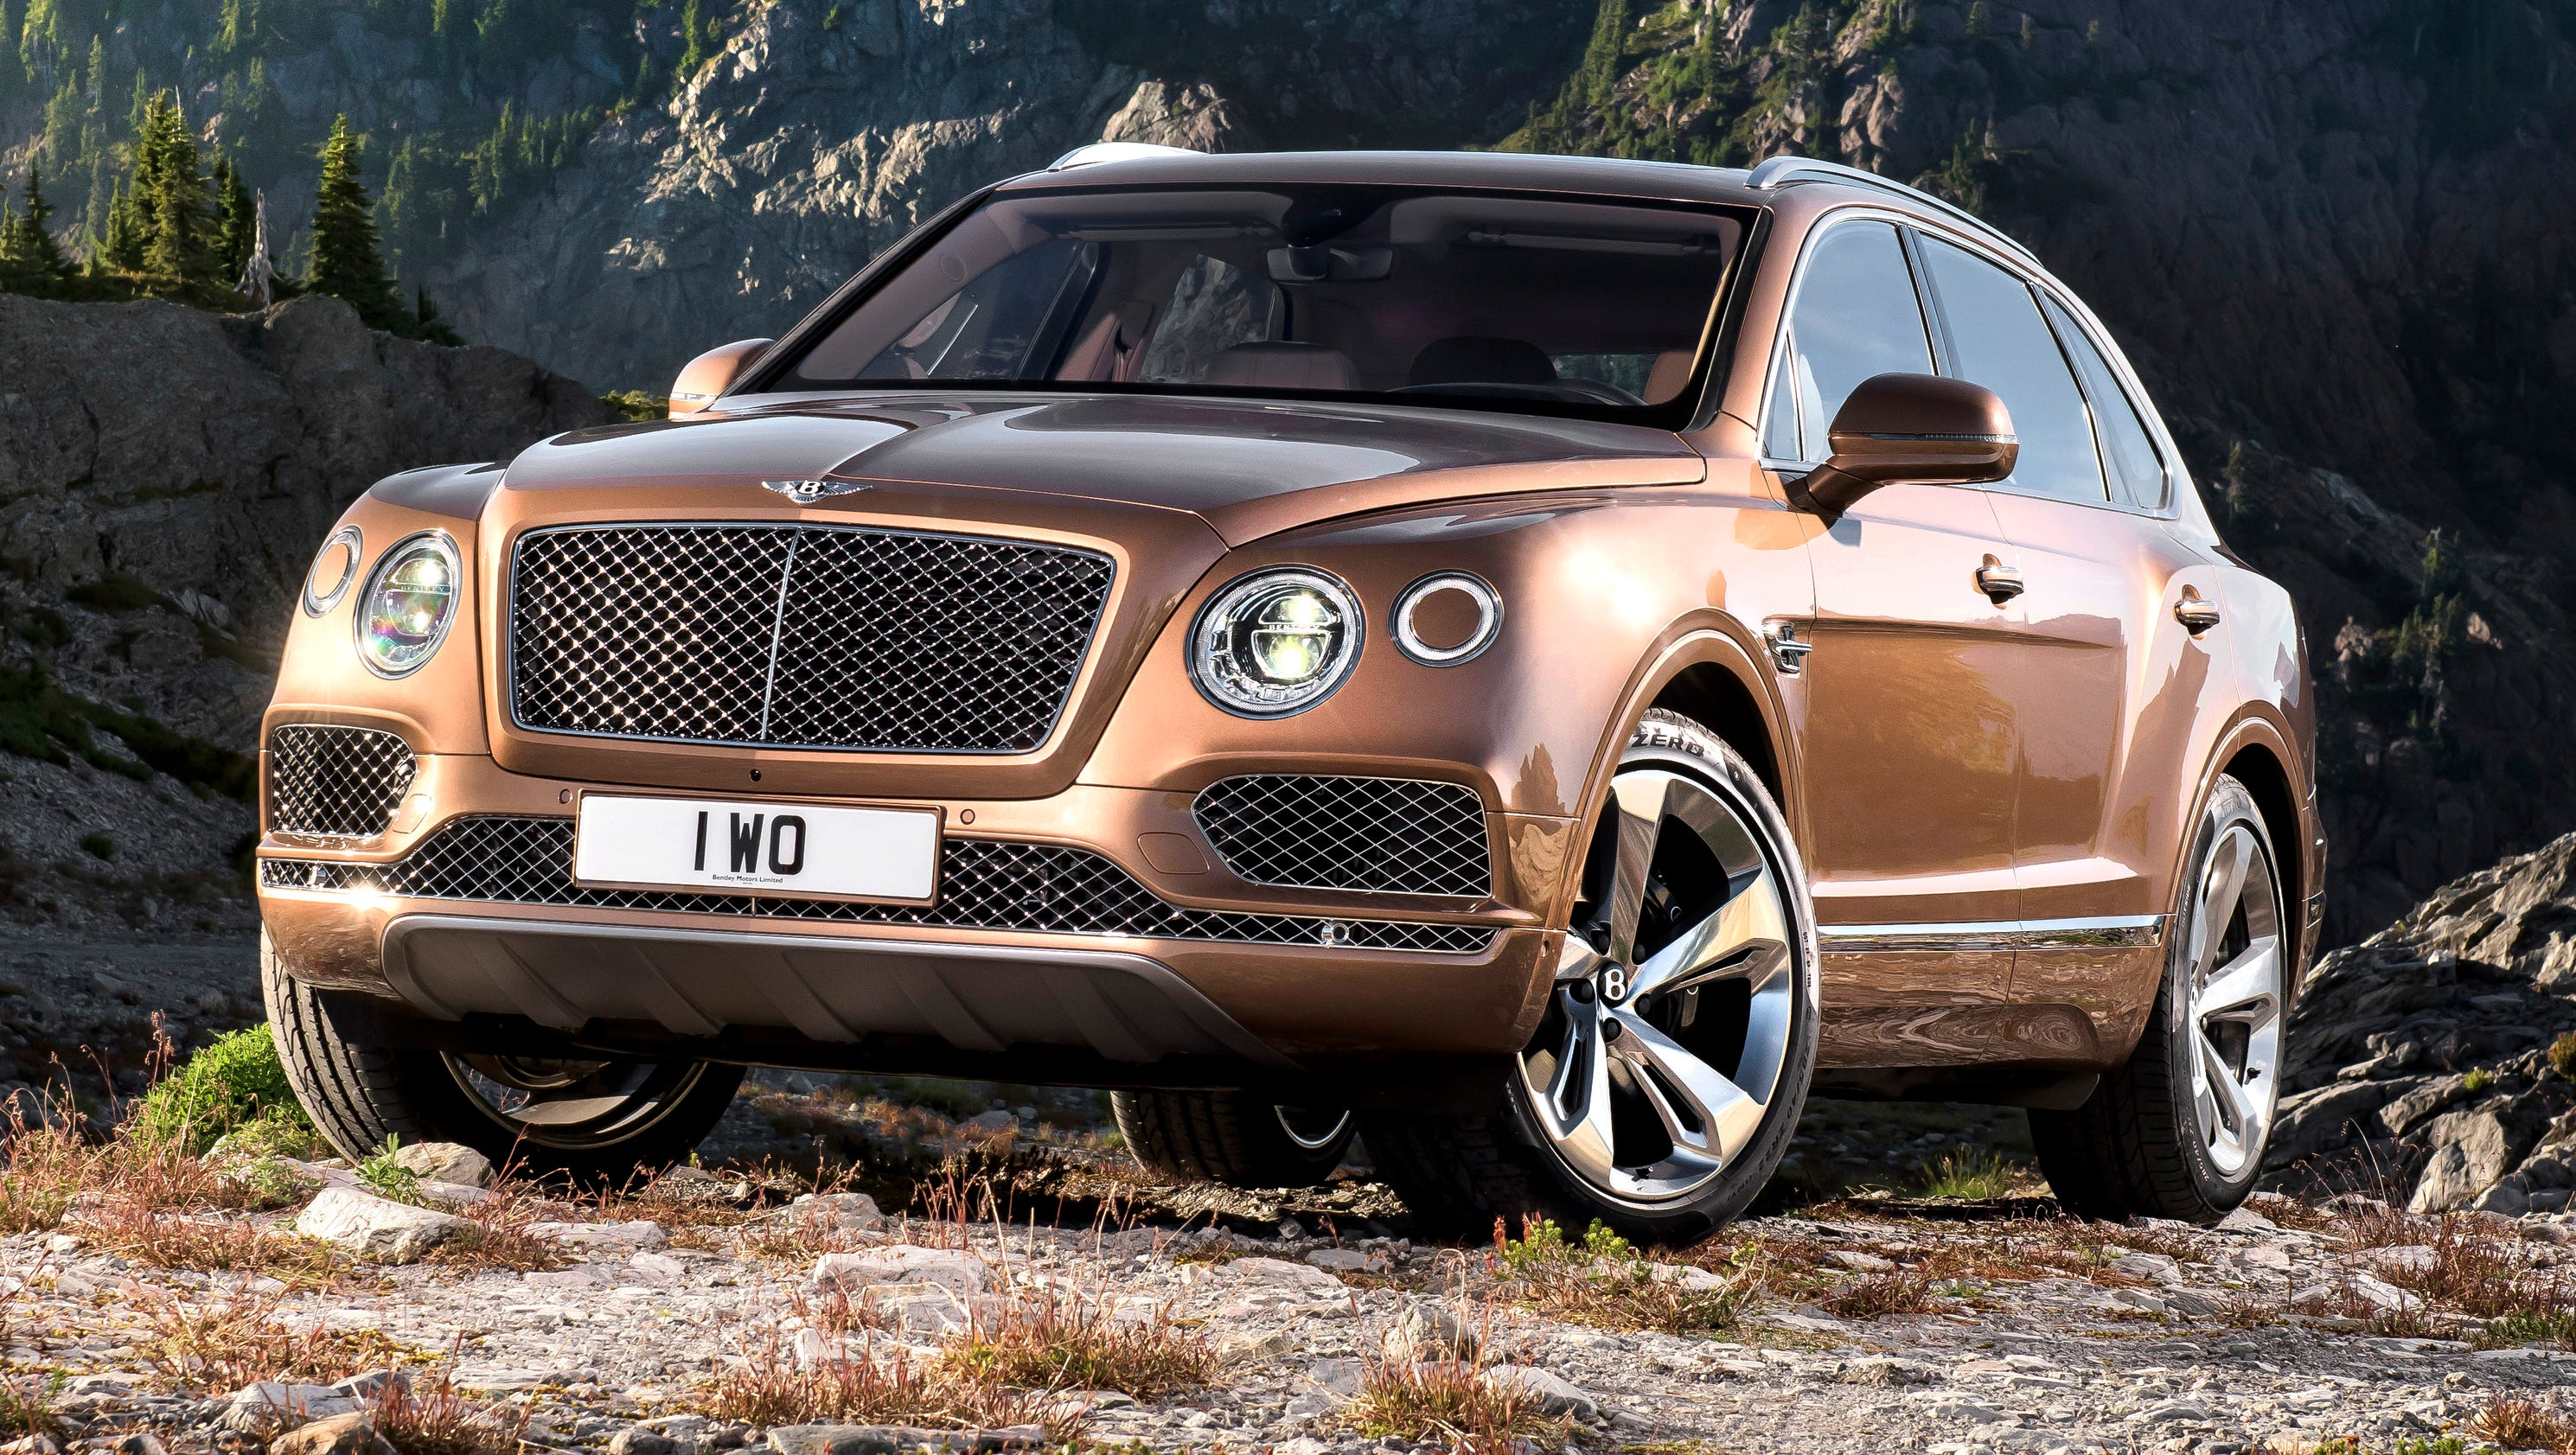 bentley prices bentayga suv way above 200k. Black Bedroom Furniture Sets. Home Design Ideas